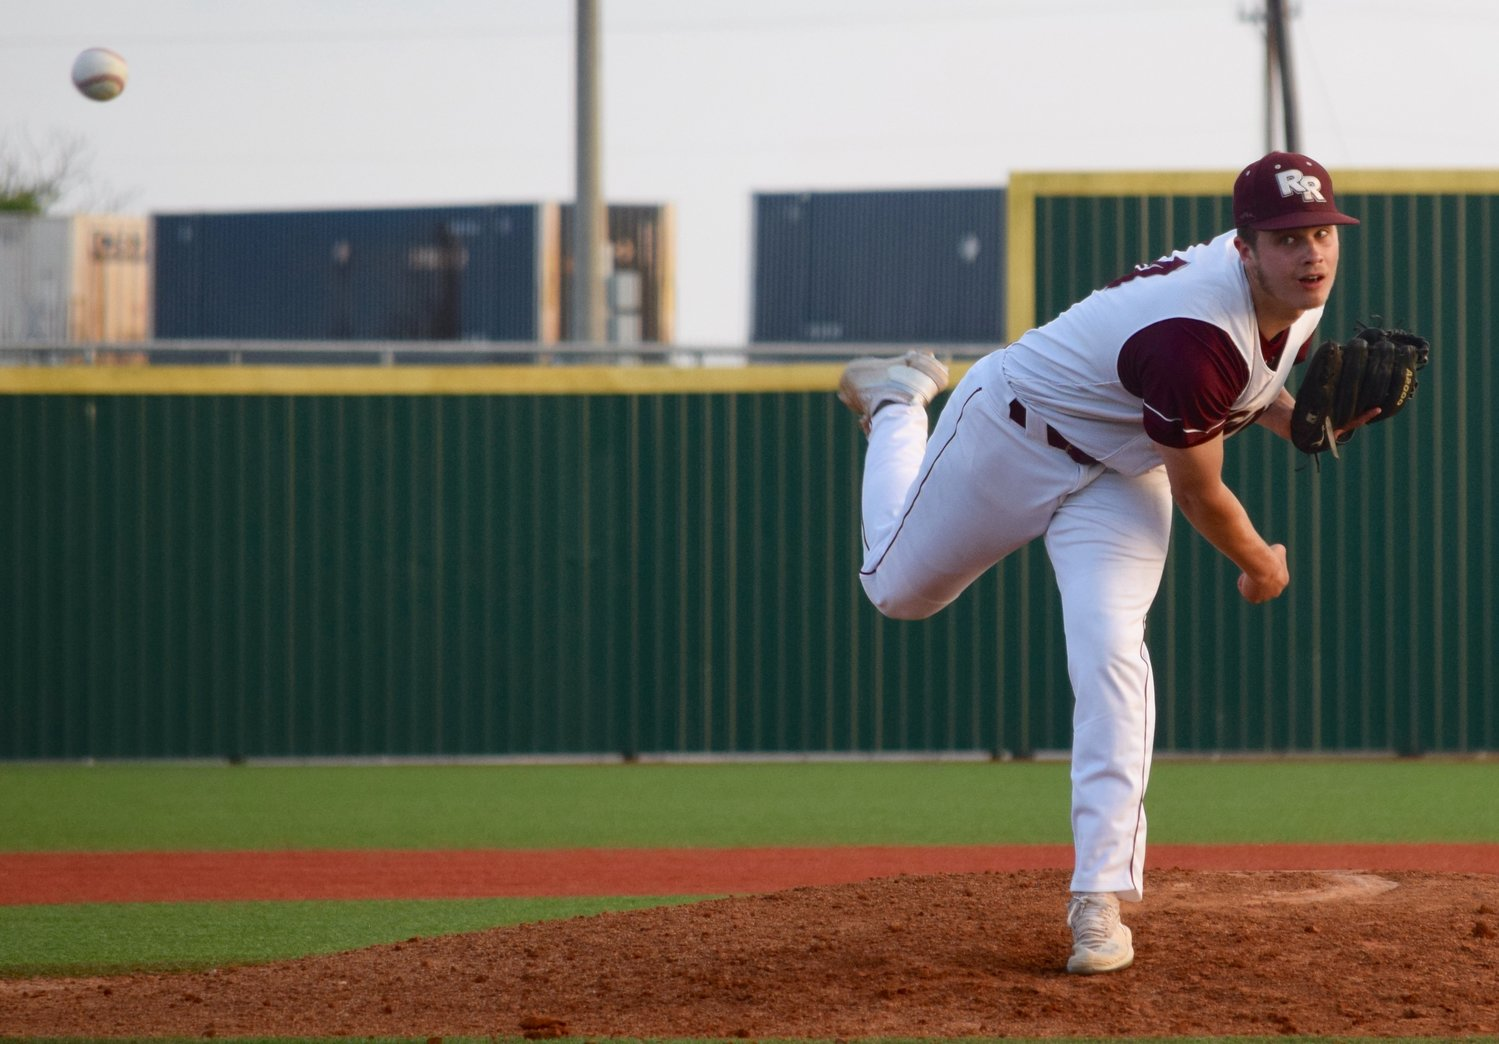 Sean Swain finished with six strikeouts and Round Rock beat top-ranked Cypress Ranch 2-1 on Friday to force a decisive Game 3.